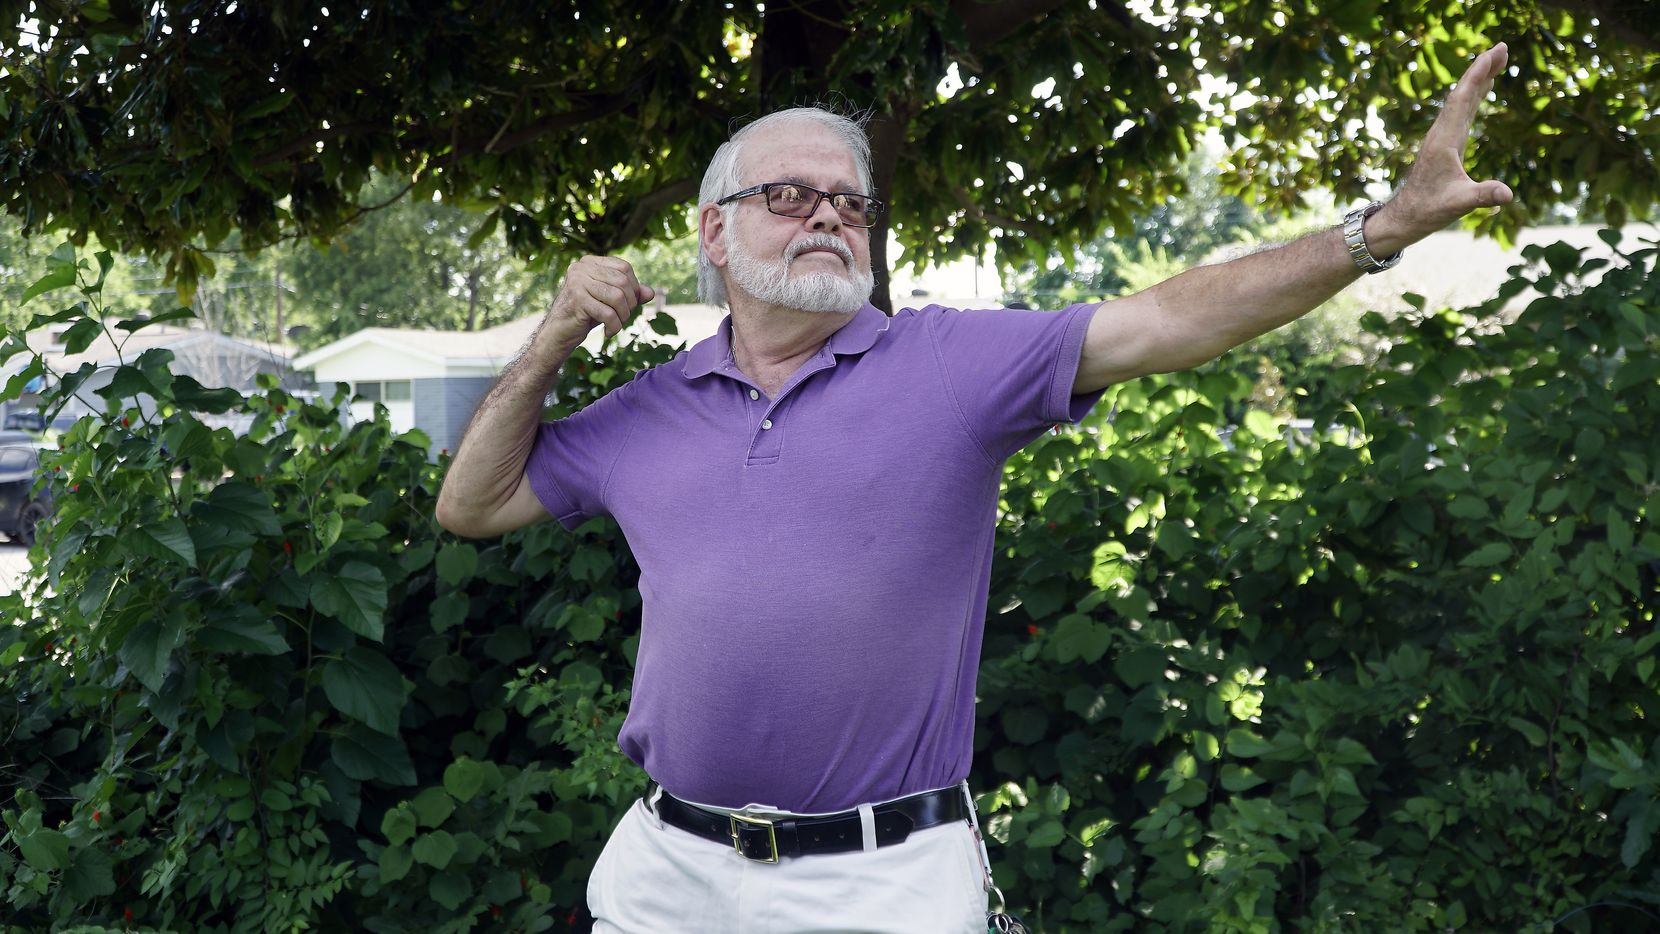 Richard Giltner practices qi gong outside his Fort Worth home. He credits the meditative exercise with reducing the stress of caring for his wife, a cancer patient.